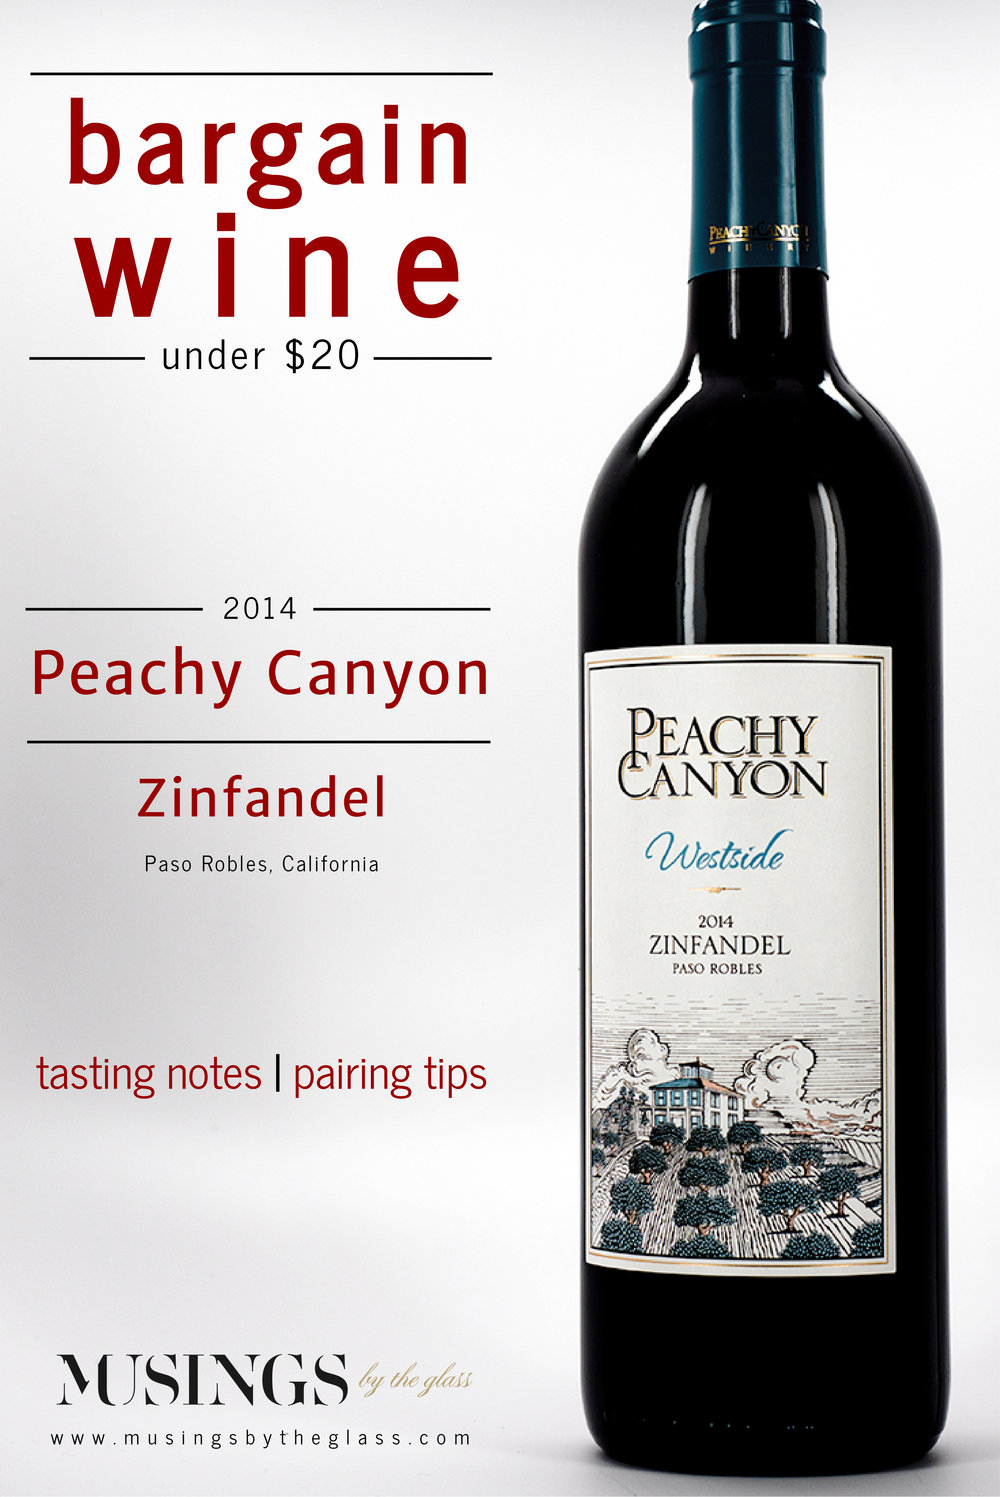 Musings by the Glass - Bargain Wines - Peachy Canyon Westside 2014 Zinfandel